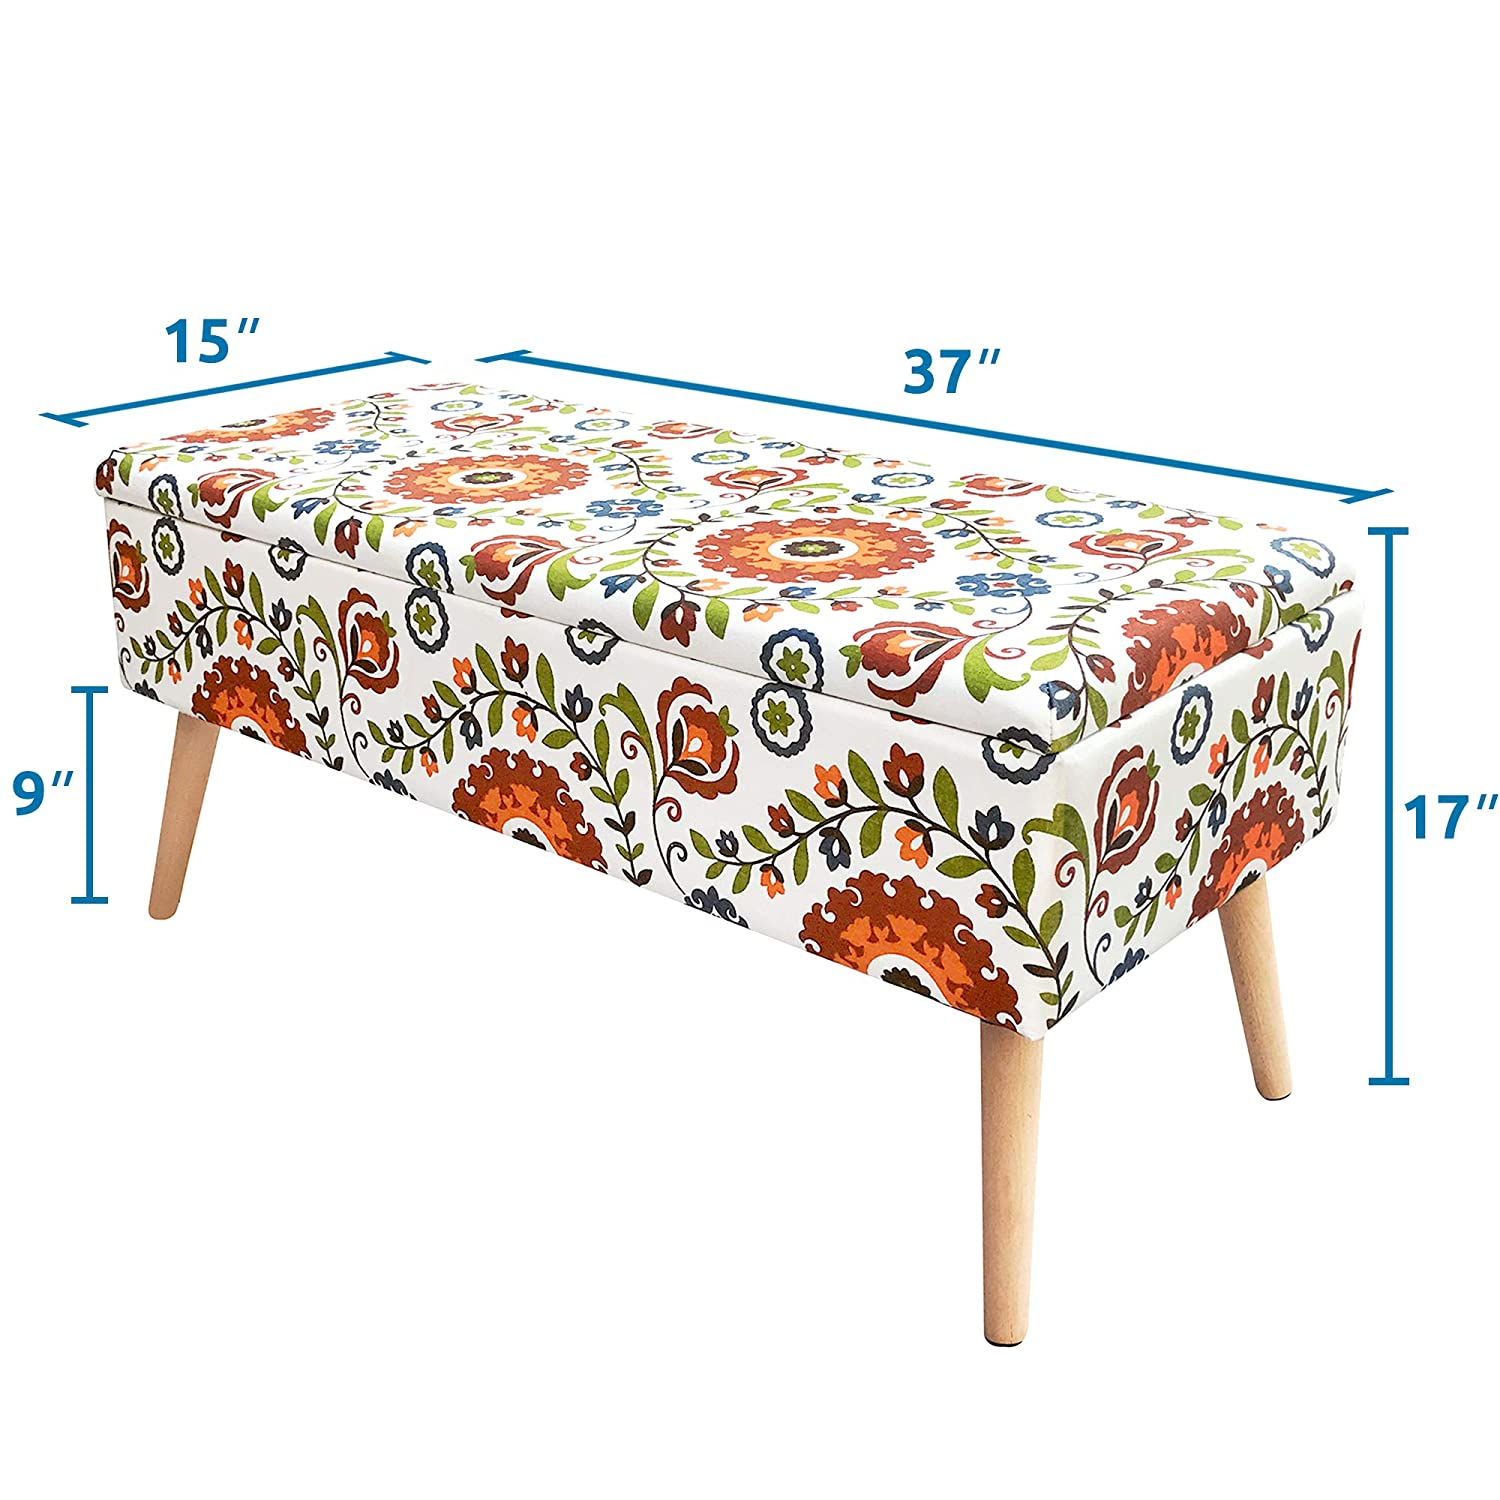 Otto Ben 37 Storage Bench – Mid Century Ottoman with EASY LIFT Top, Upholstered Shoe Ottomans Seats for Entryway and Bedroom, Retro Floral